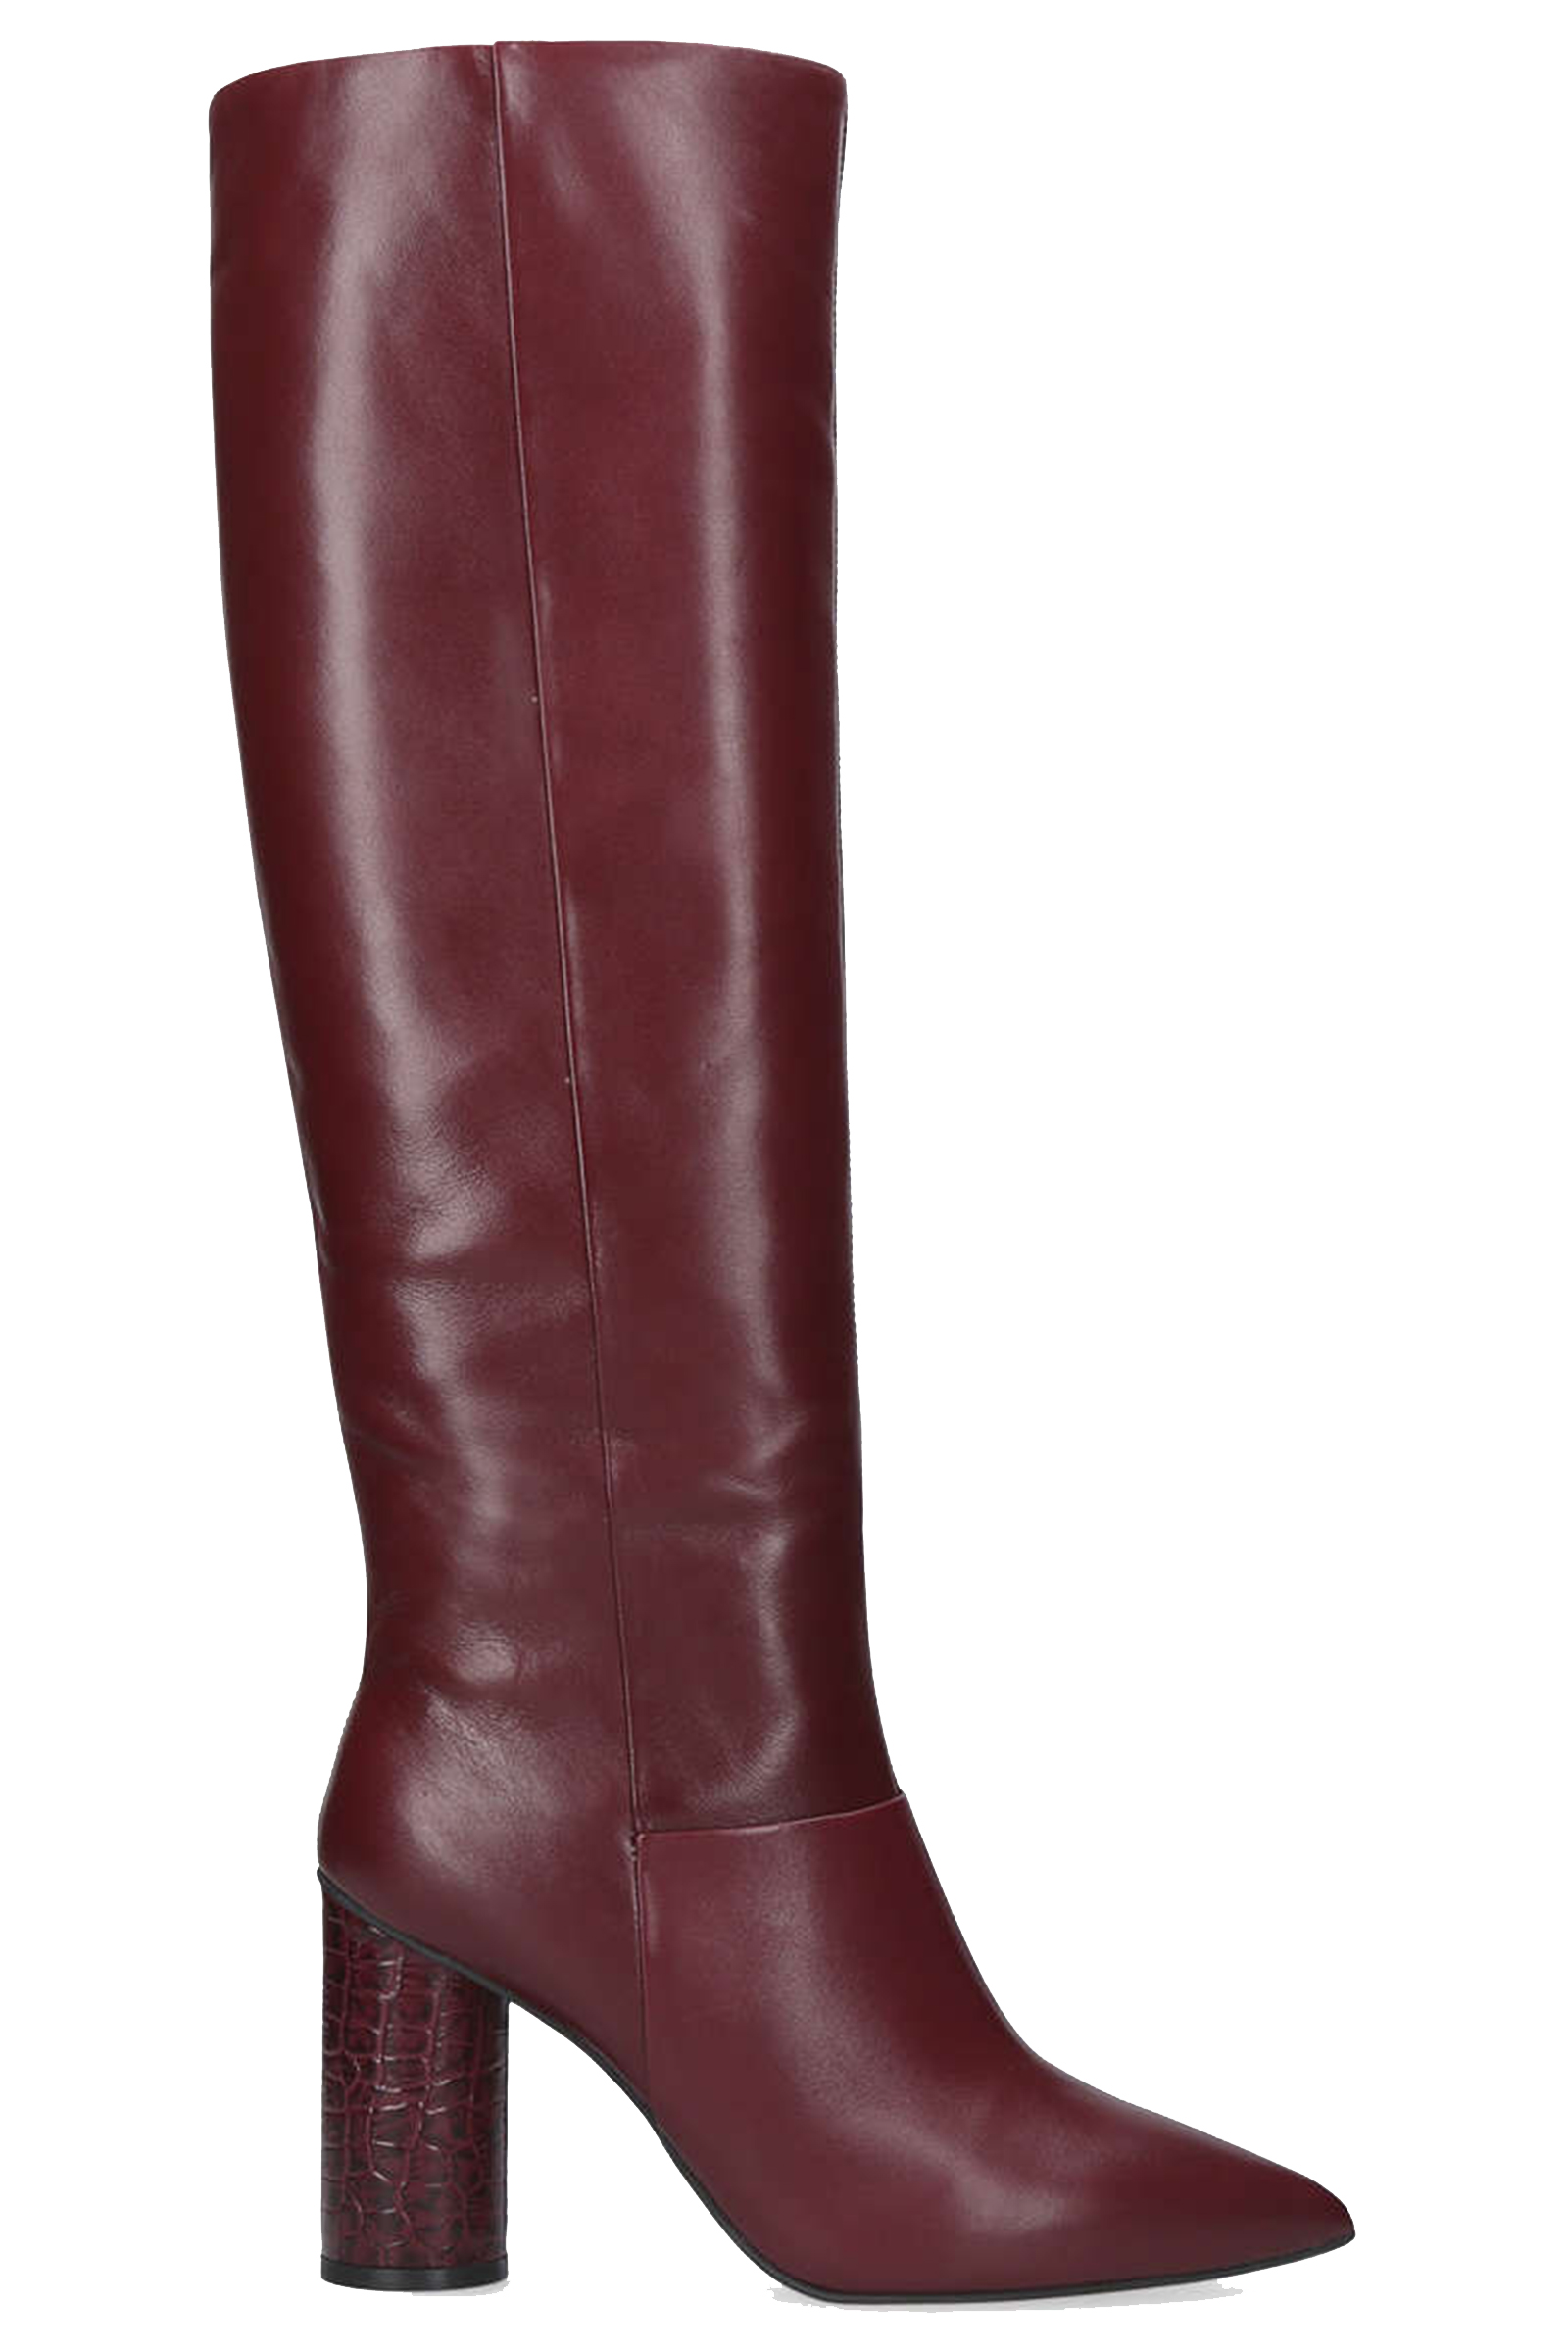 Click to buy Kurt Geiger Trance boots